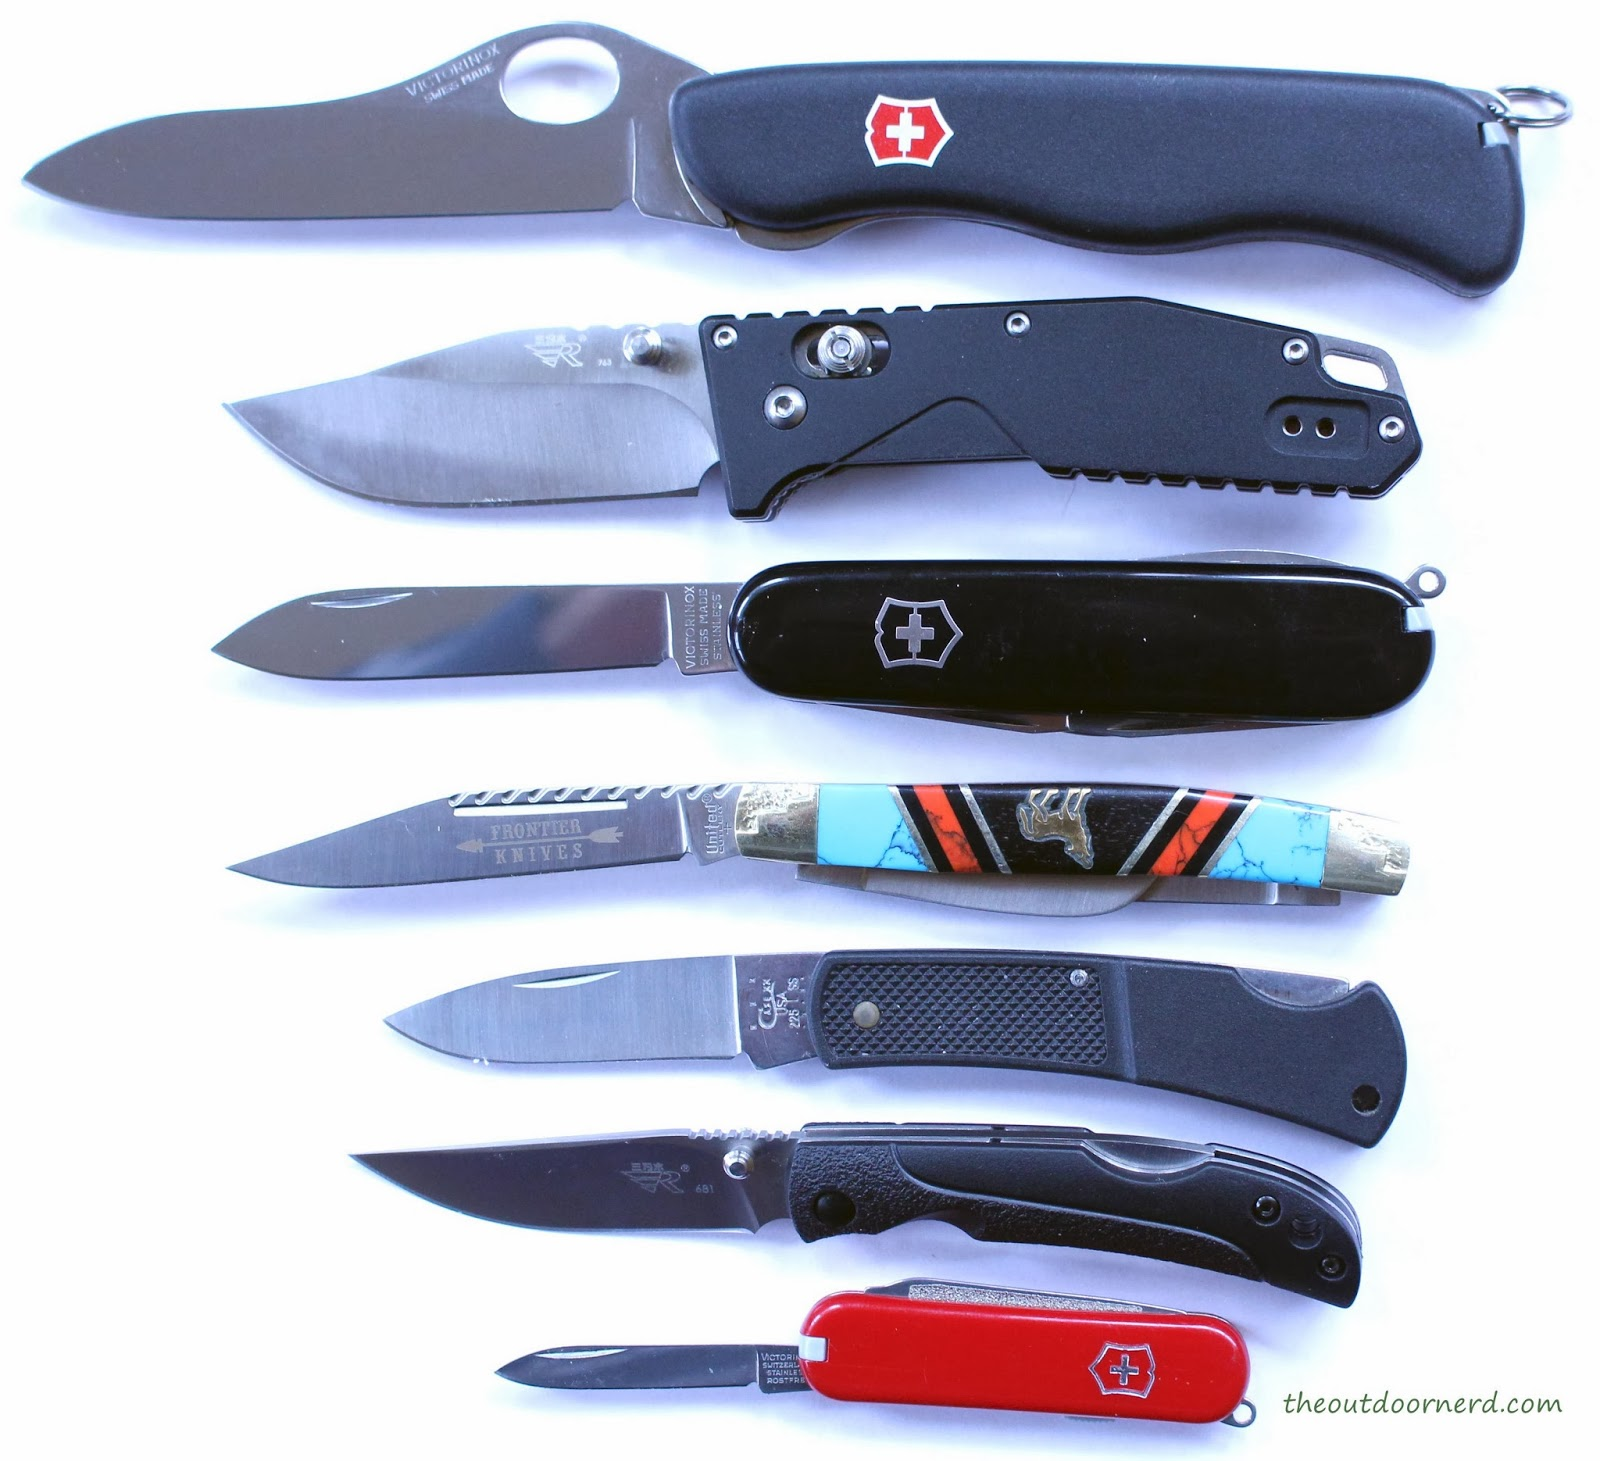 From Top: Victorinox Sentinel, SanRenMu LB-763, Victorinox Tinker, United Cutlery Wolf, Case XX, and Victorinox Classic